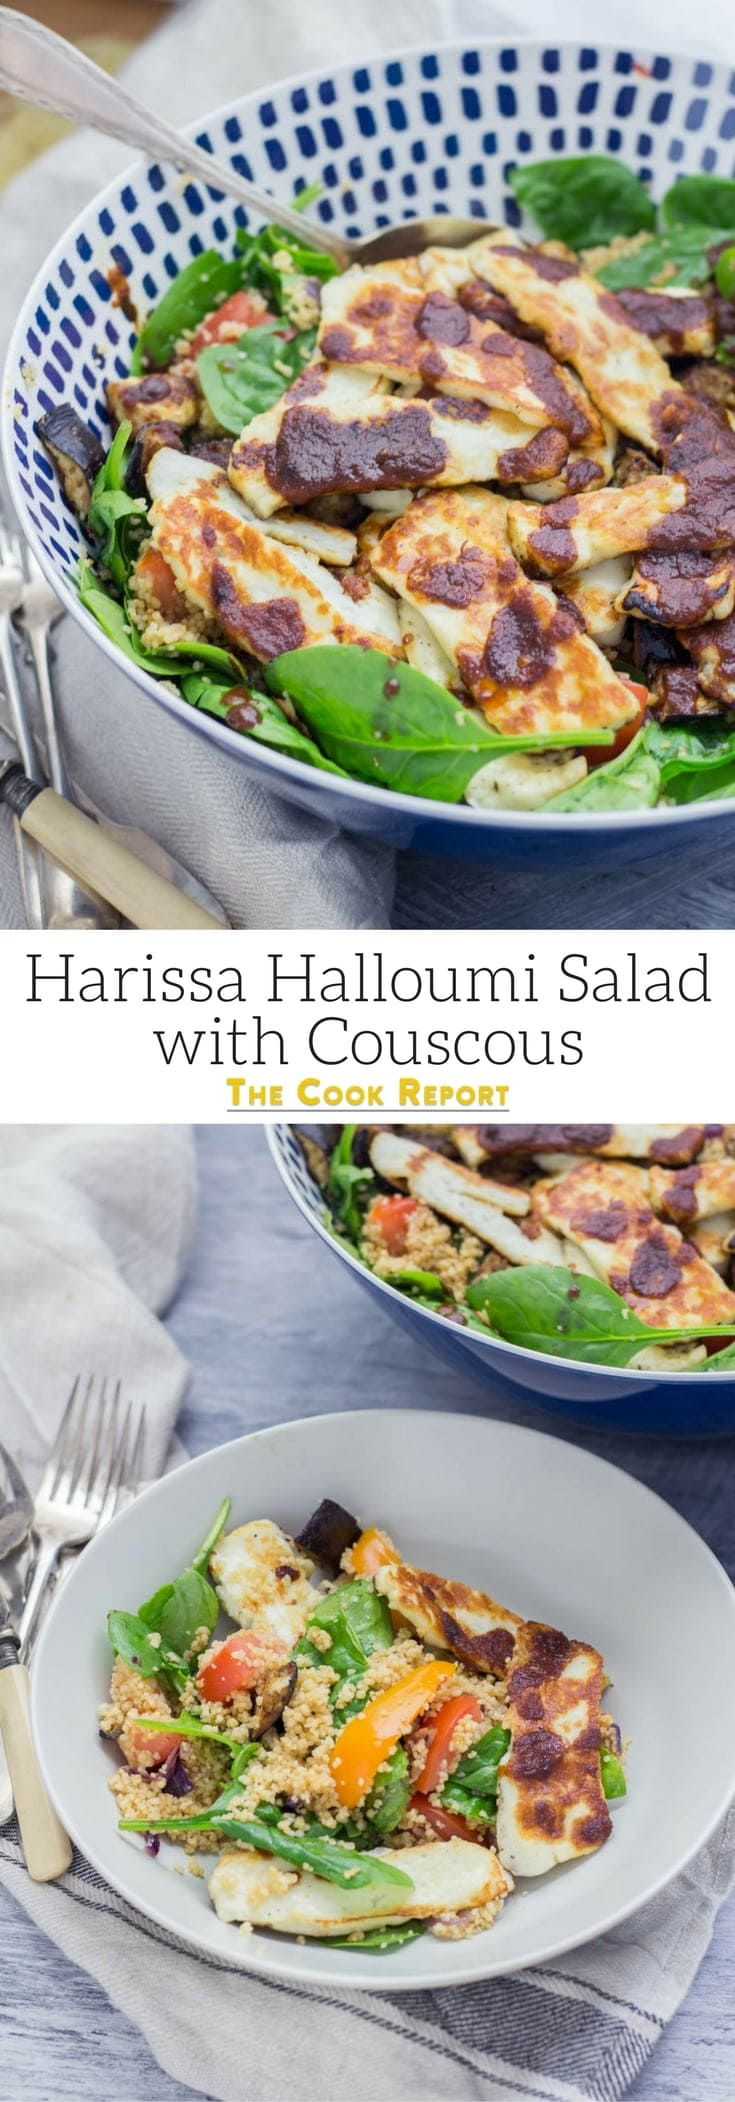 This harissa halloumi salad is so quick to make and is bursting with healthy ingredients! The salty halloumi is the perfect addition to this vegetarian dish.#vegetarian #salad #healthy #halloumi